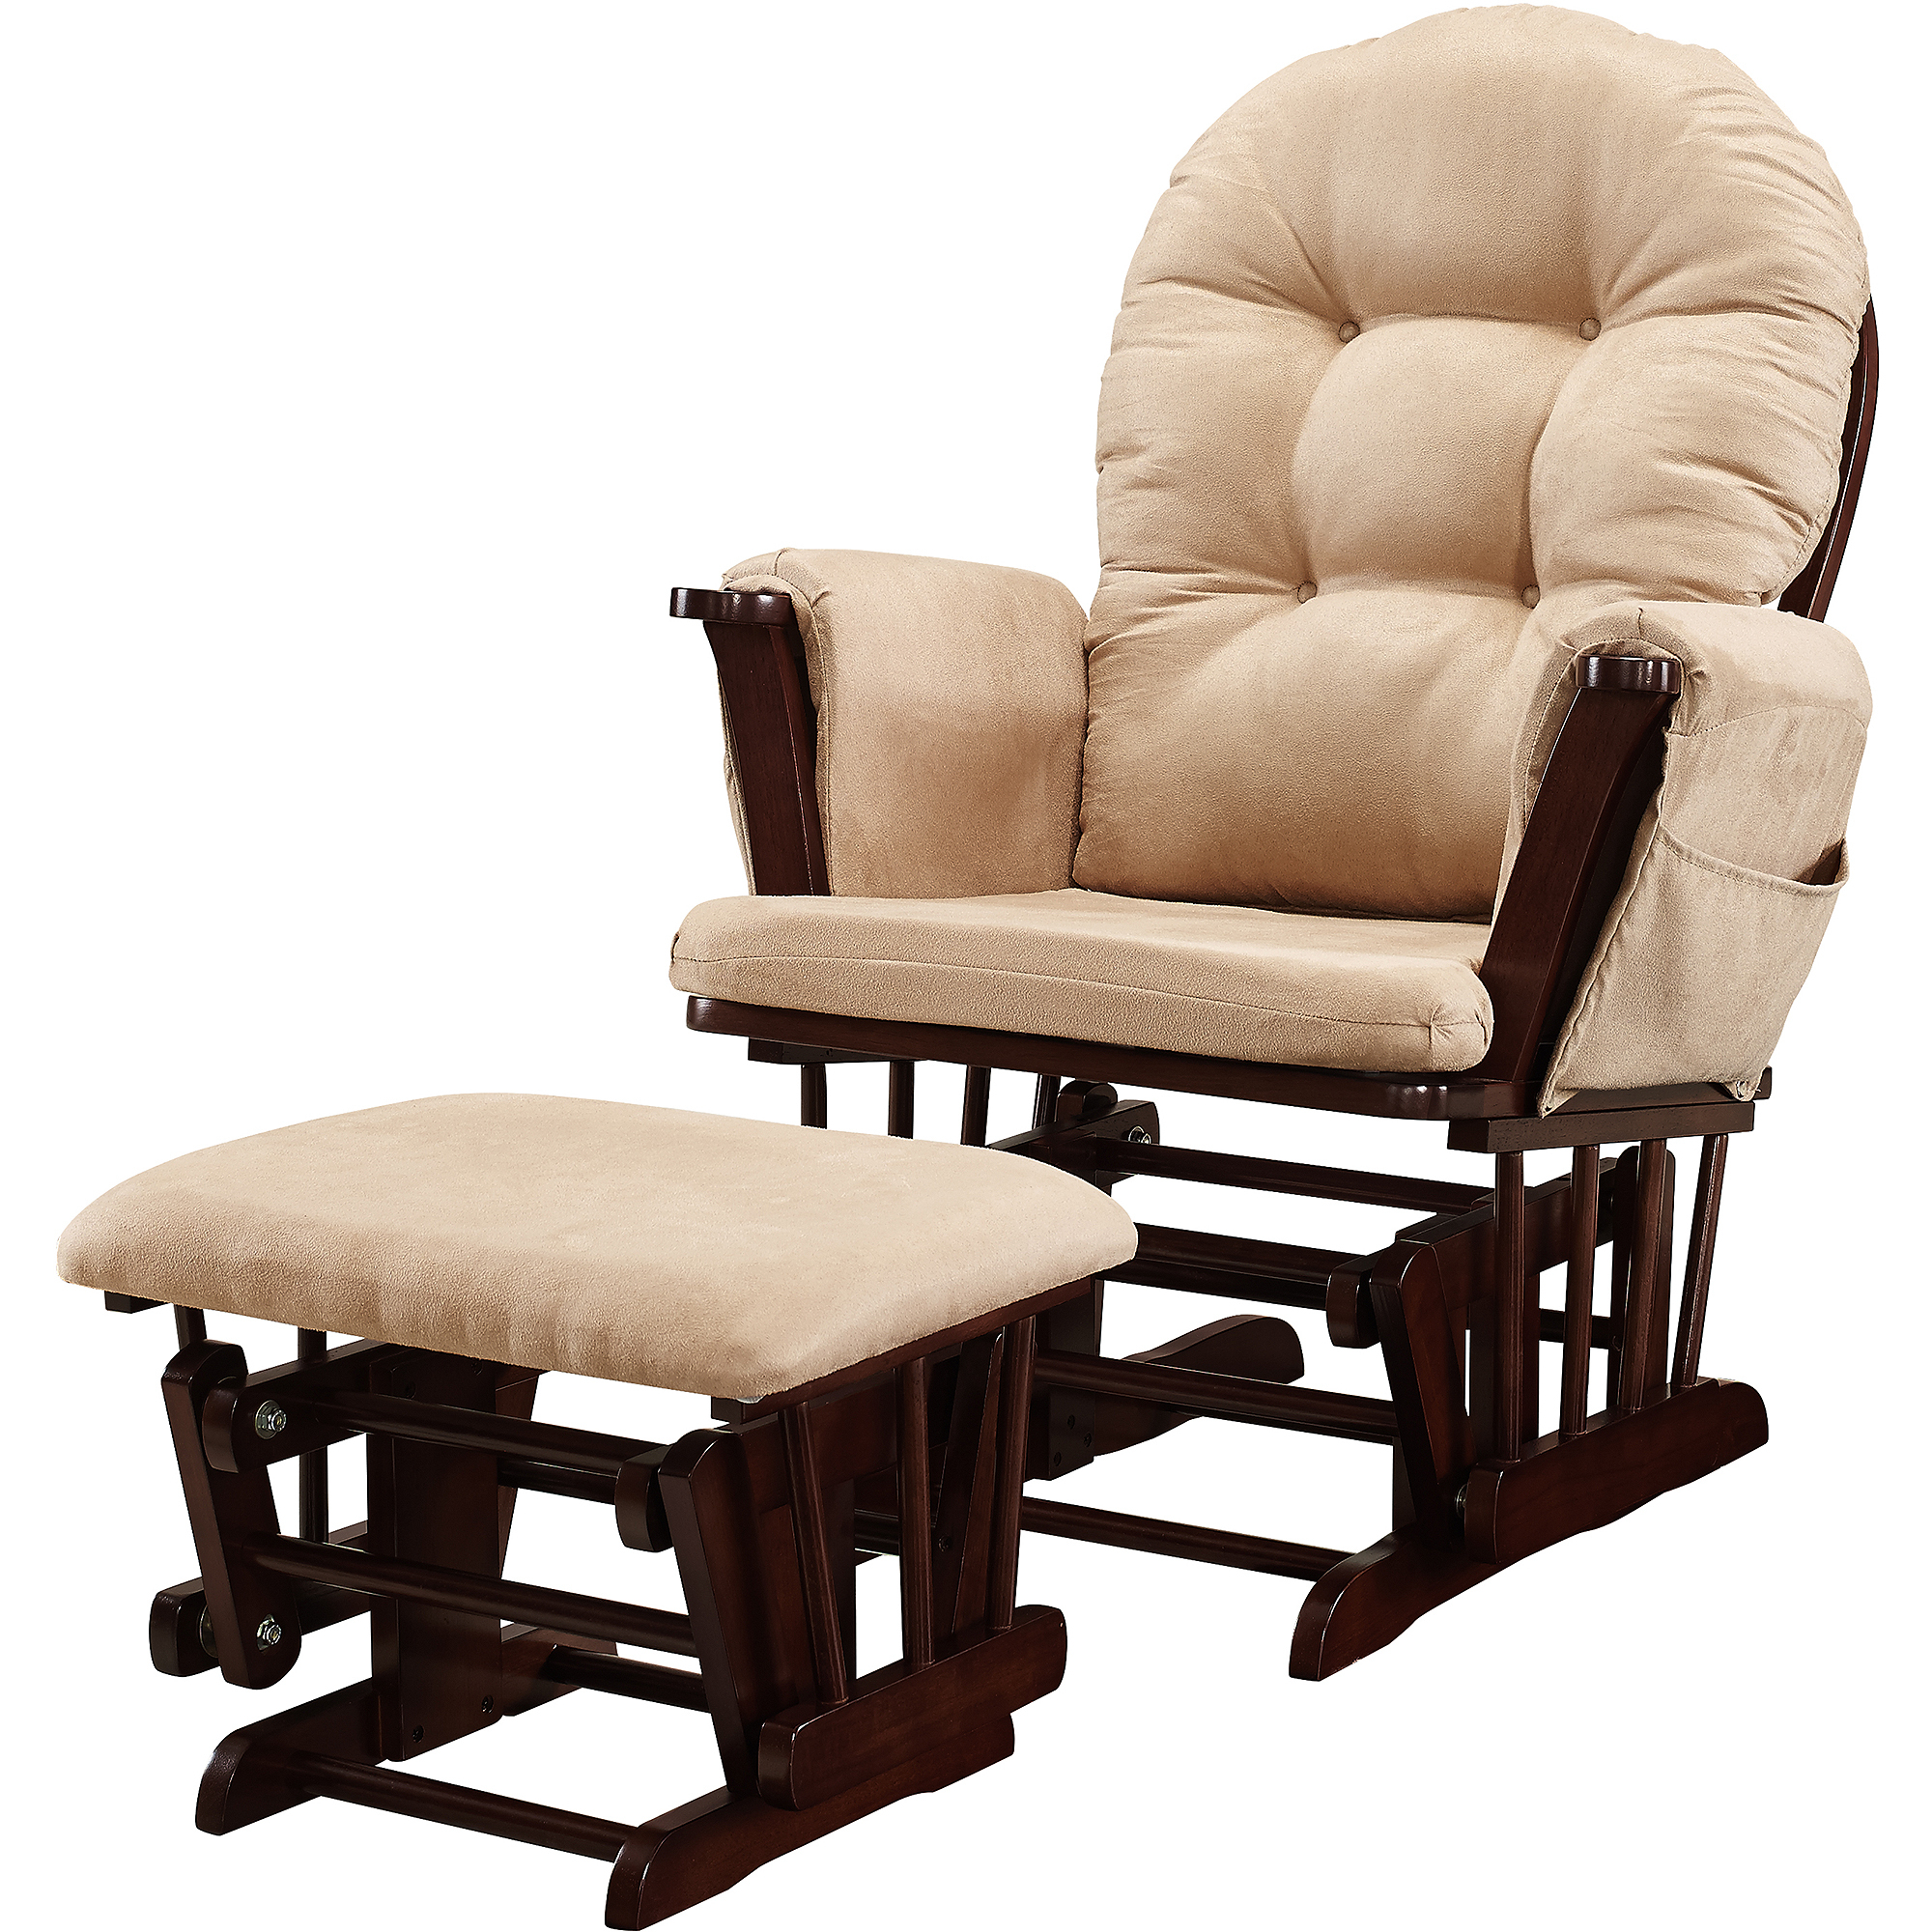 Current Baby Relax Abby Rocker Gray – Walmart Pertaining To Abbey Swivel Glider Recliners (View 11 of 20)